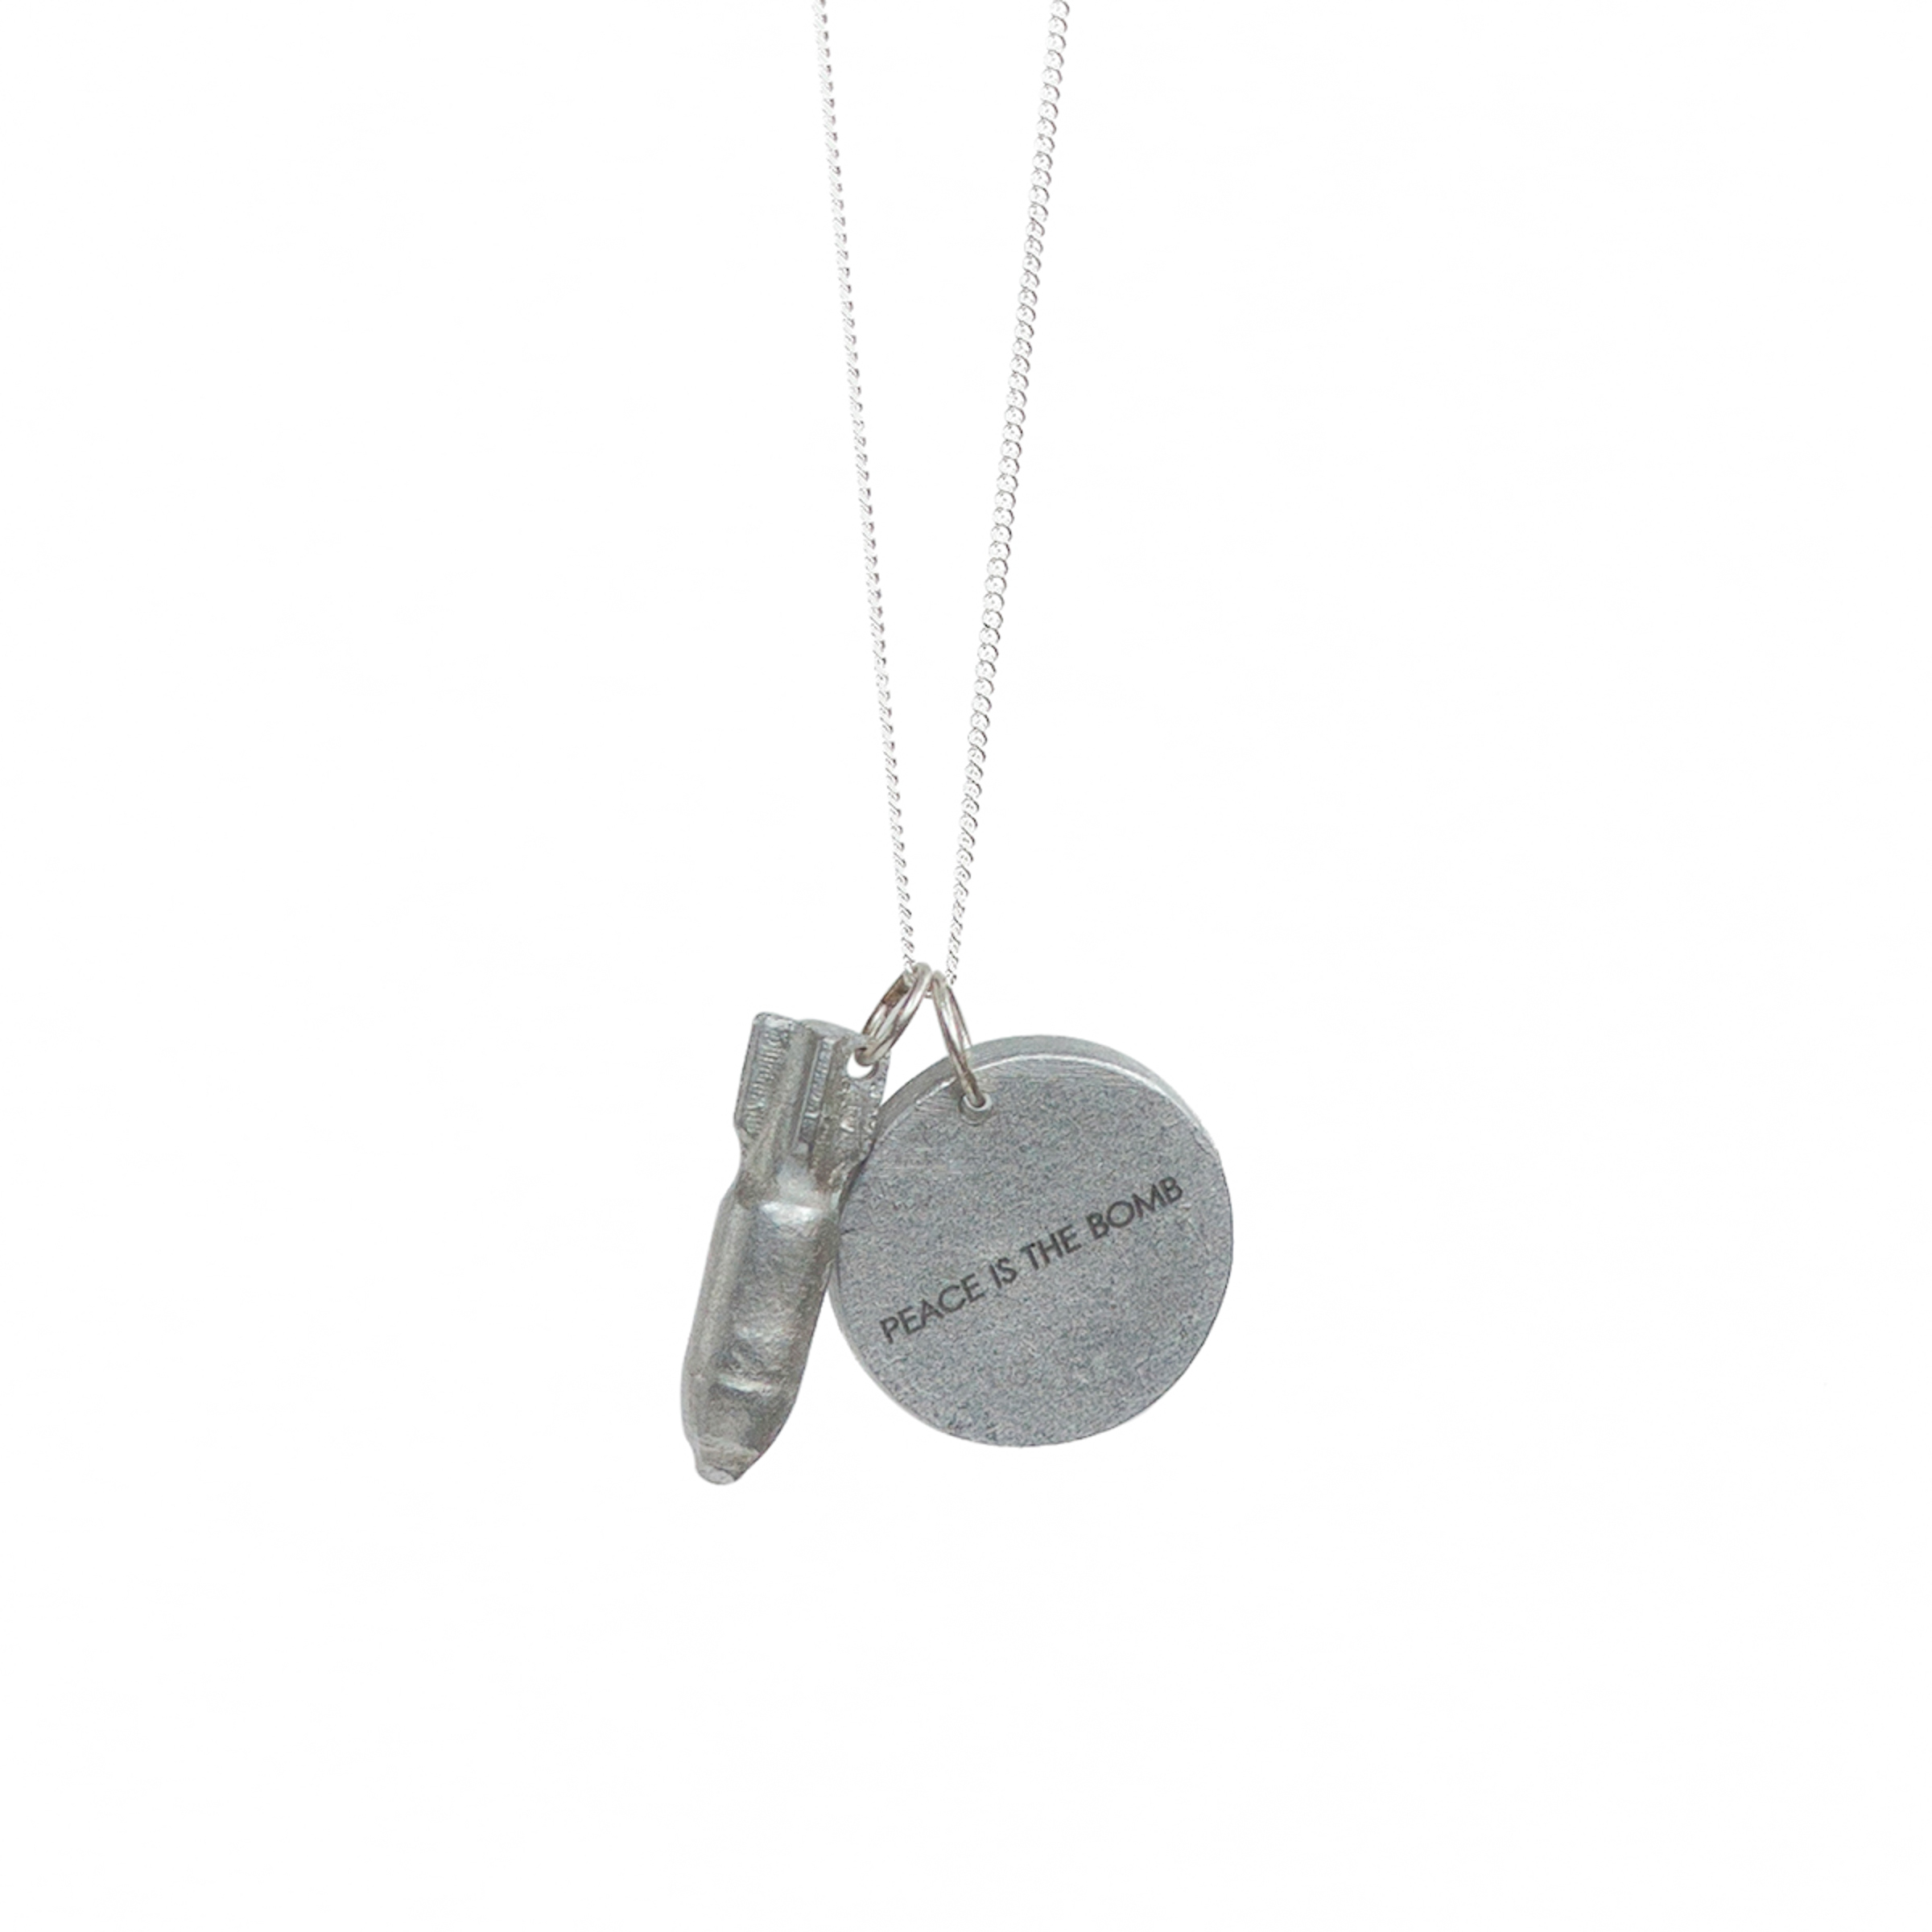 links pendant ca peace love charms en charm london and hires of